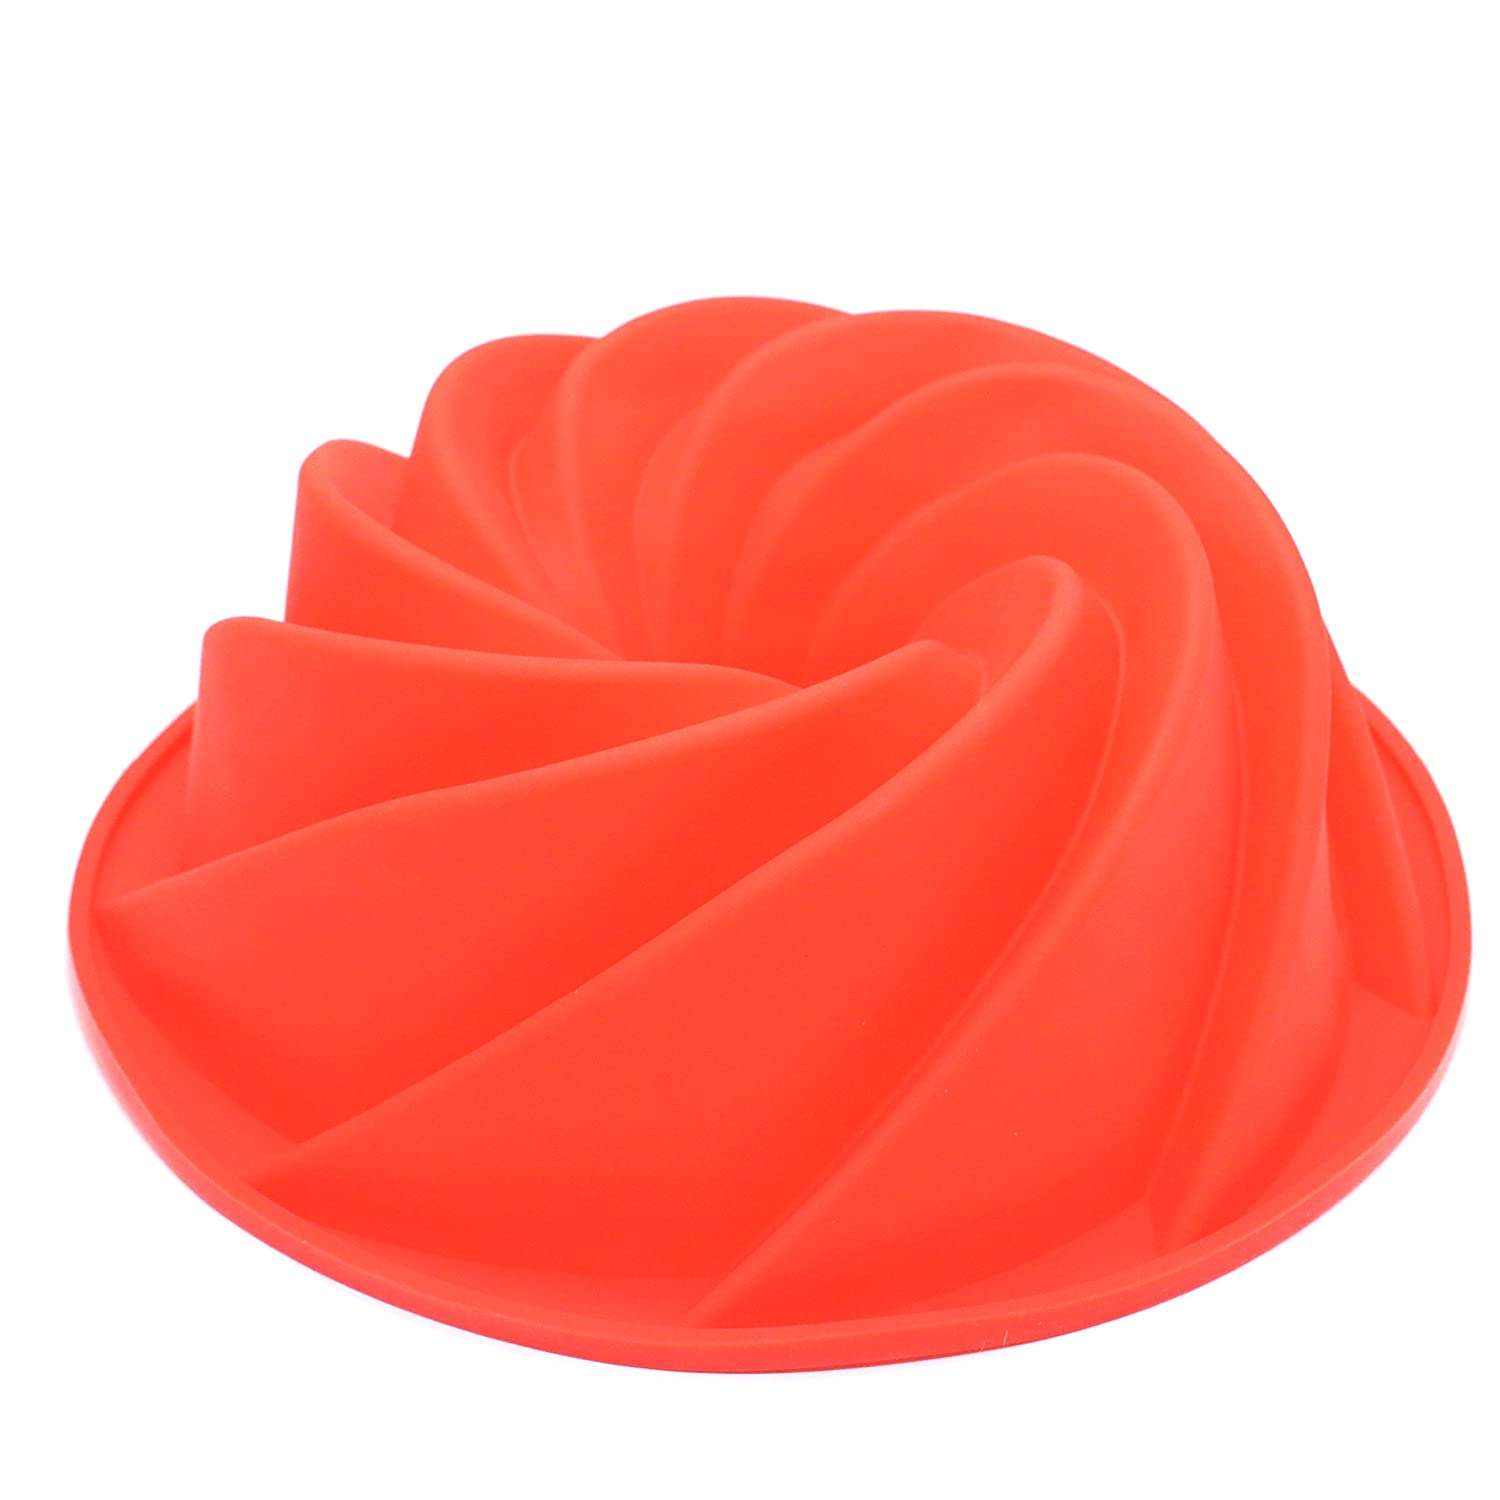 Silicone Fluted Bundt Pan Cake Mold,BPA Free, Non-Stick European-Grade Silicone,Red IDS Manufacturer